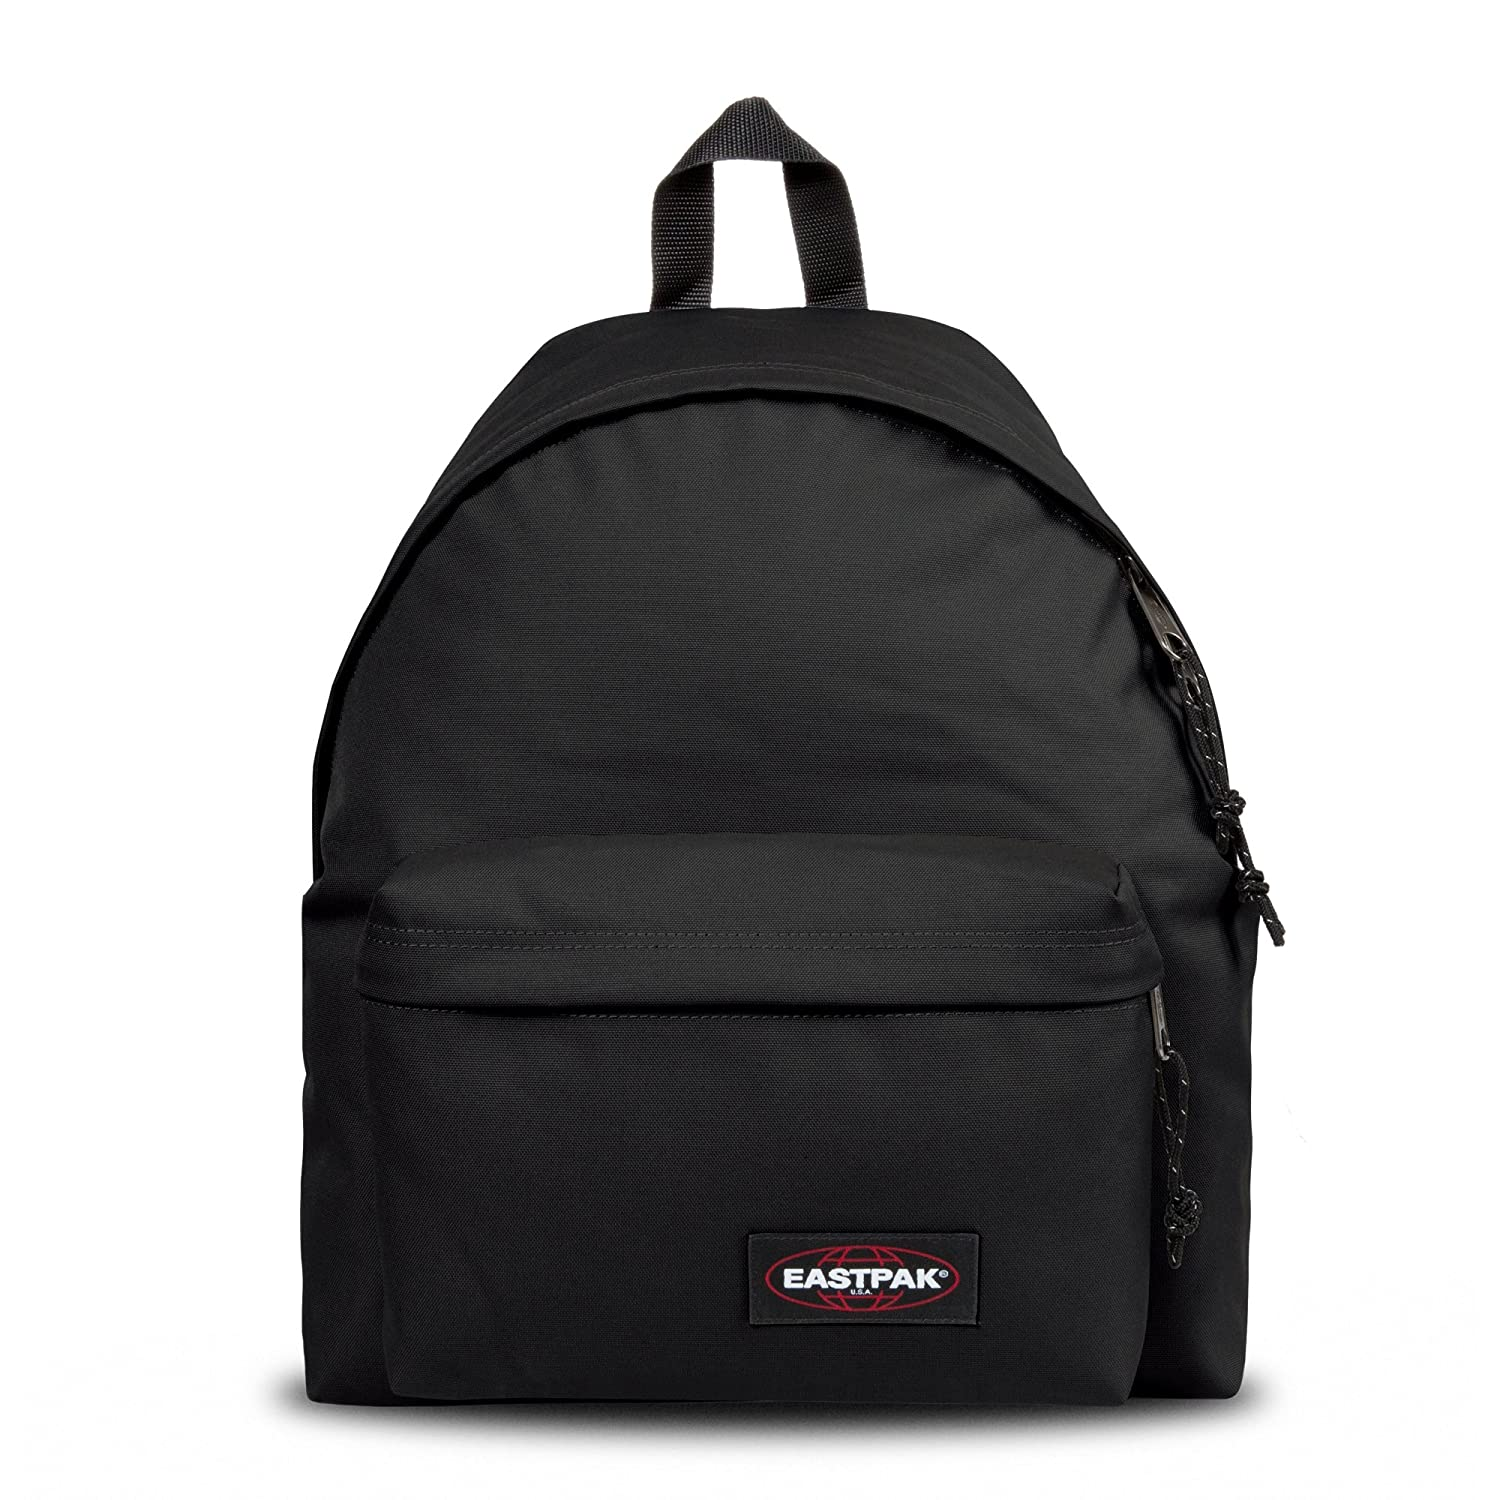 eastpak backpacks eastpak padded pak r backpack